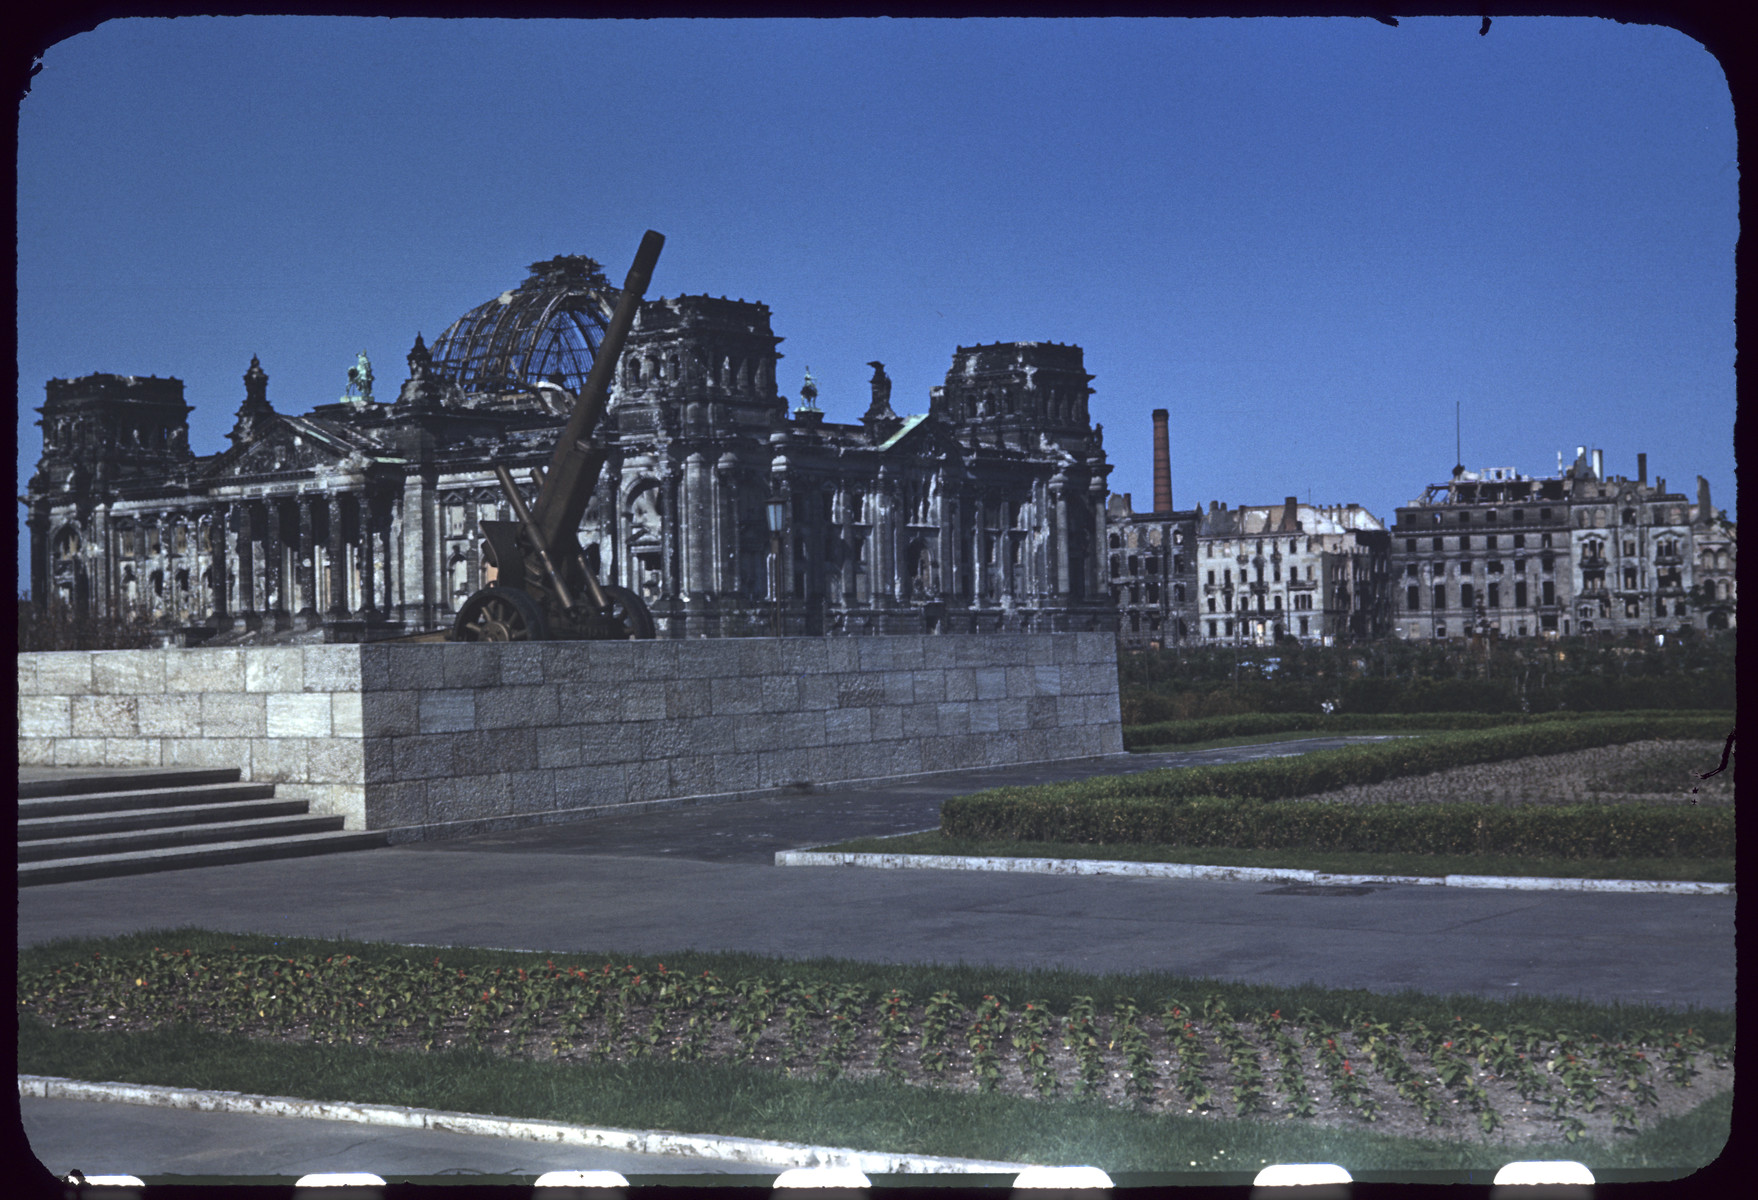 Postwar view of the Reichstag with the Soviet War Memorial in the foreground.